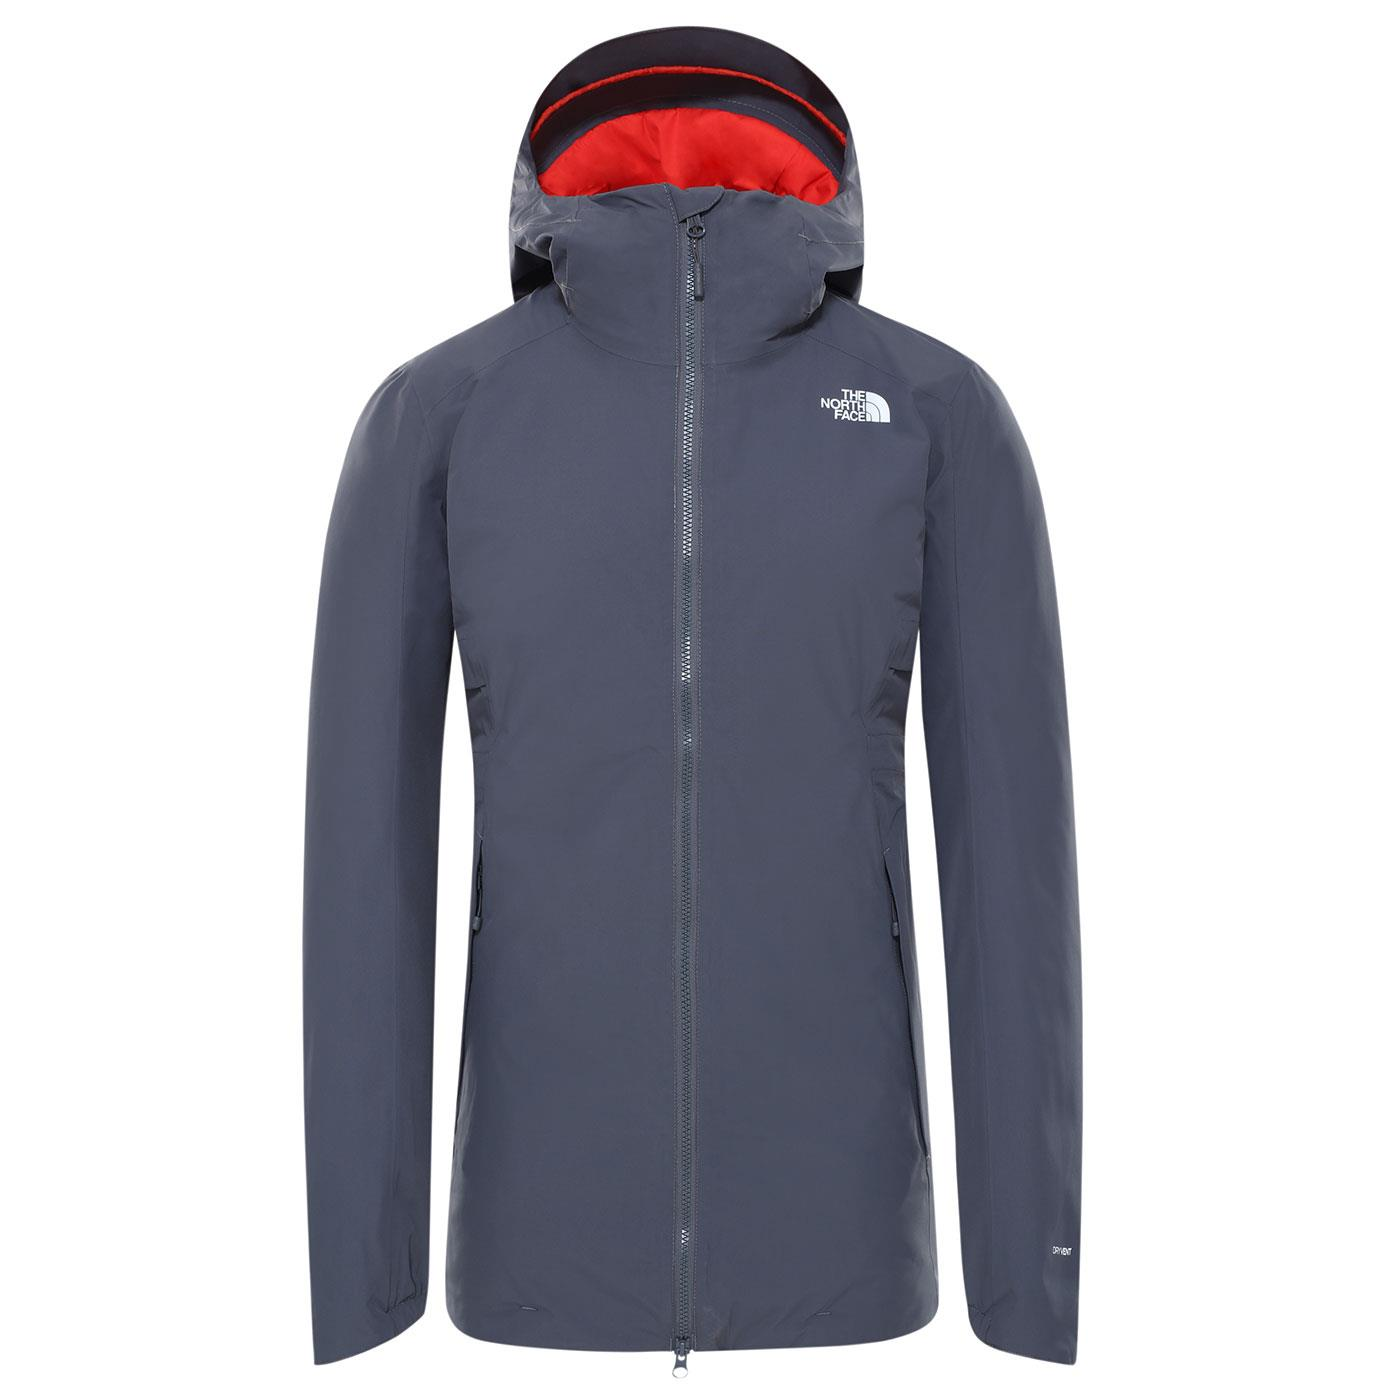 The Northface Kadın  HIKESTLLR IN PRK NF0A3Y1GU831